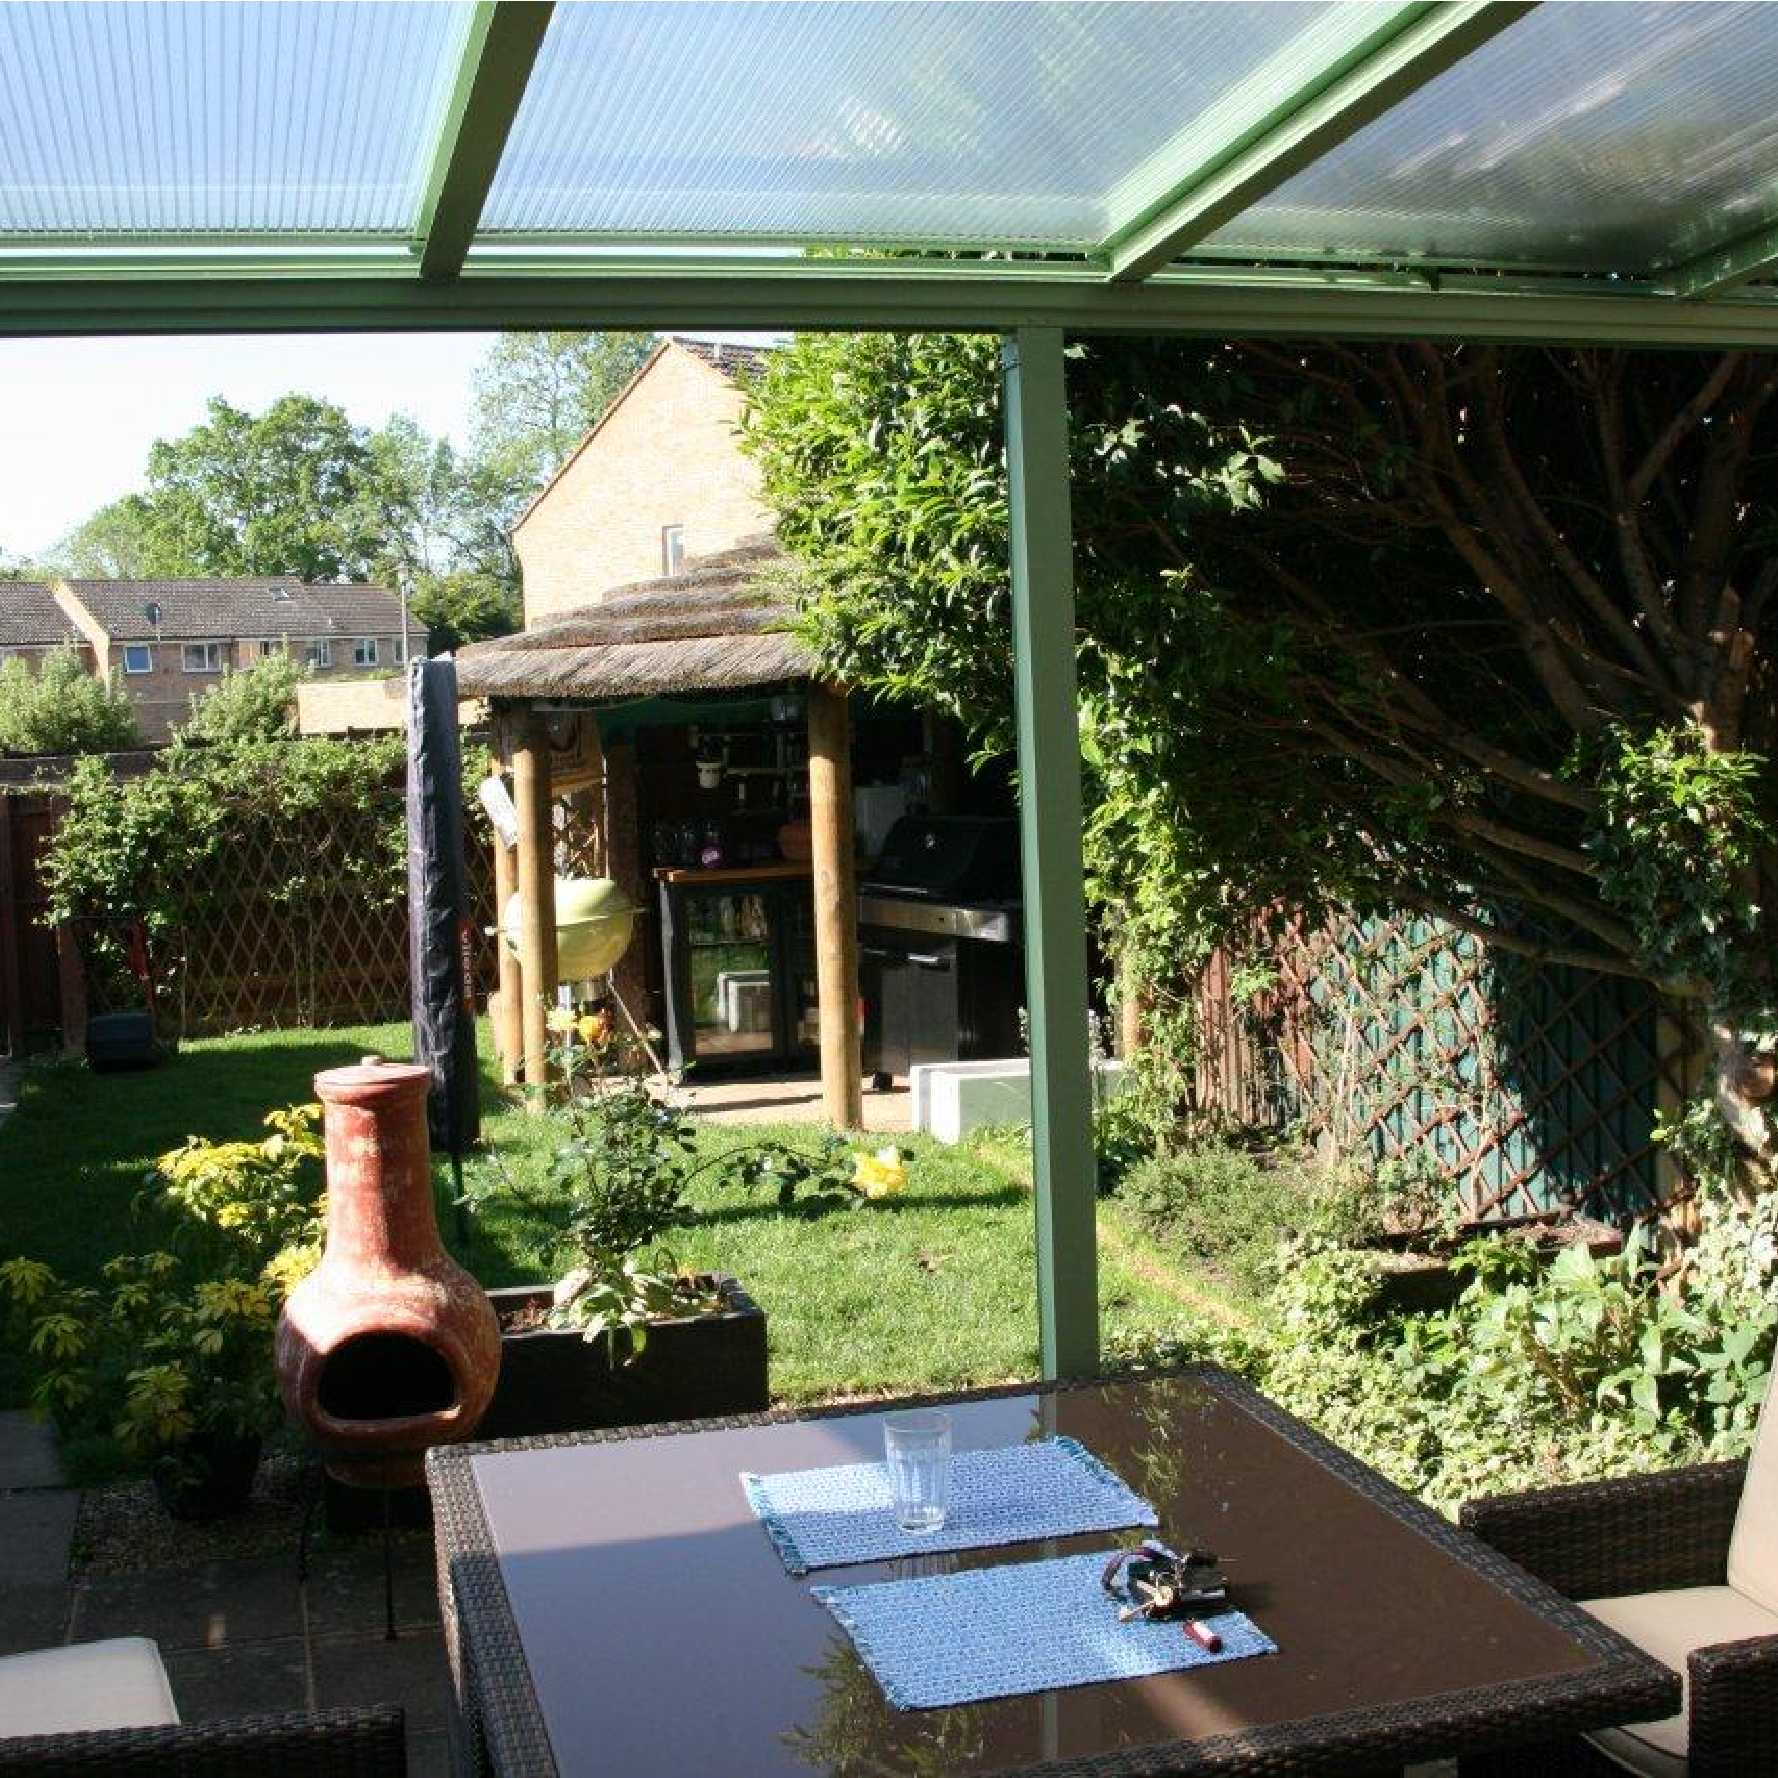 Affordable Omega Smart Lean-To Canopy with 16mm Polycarbonate Glazing - 3.1m (W) x 1.5m (P), (2) Supporting Posts